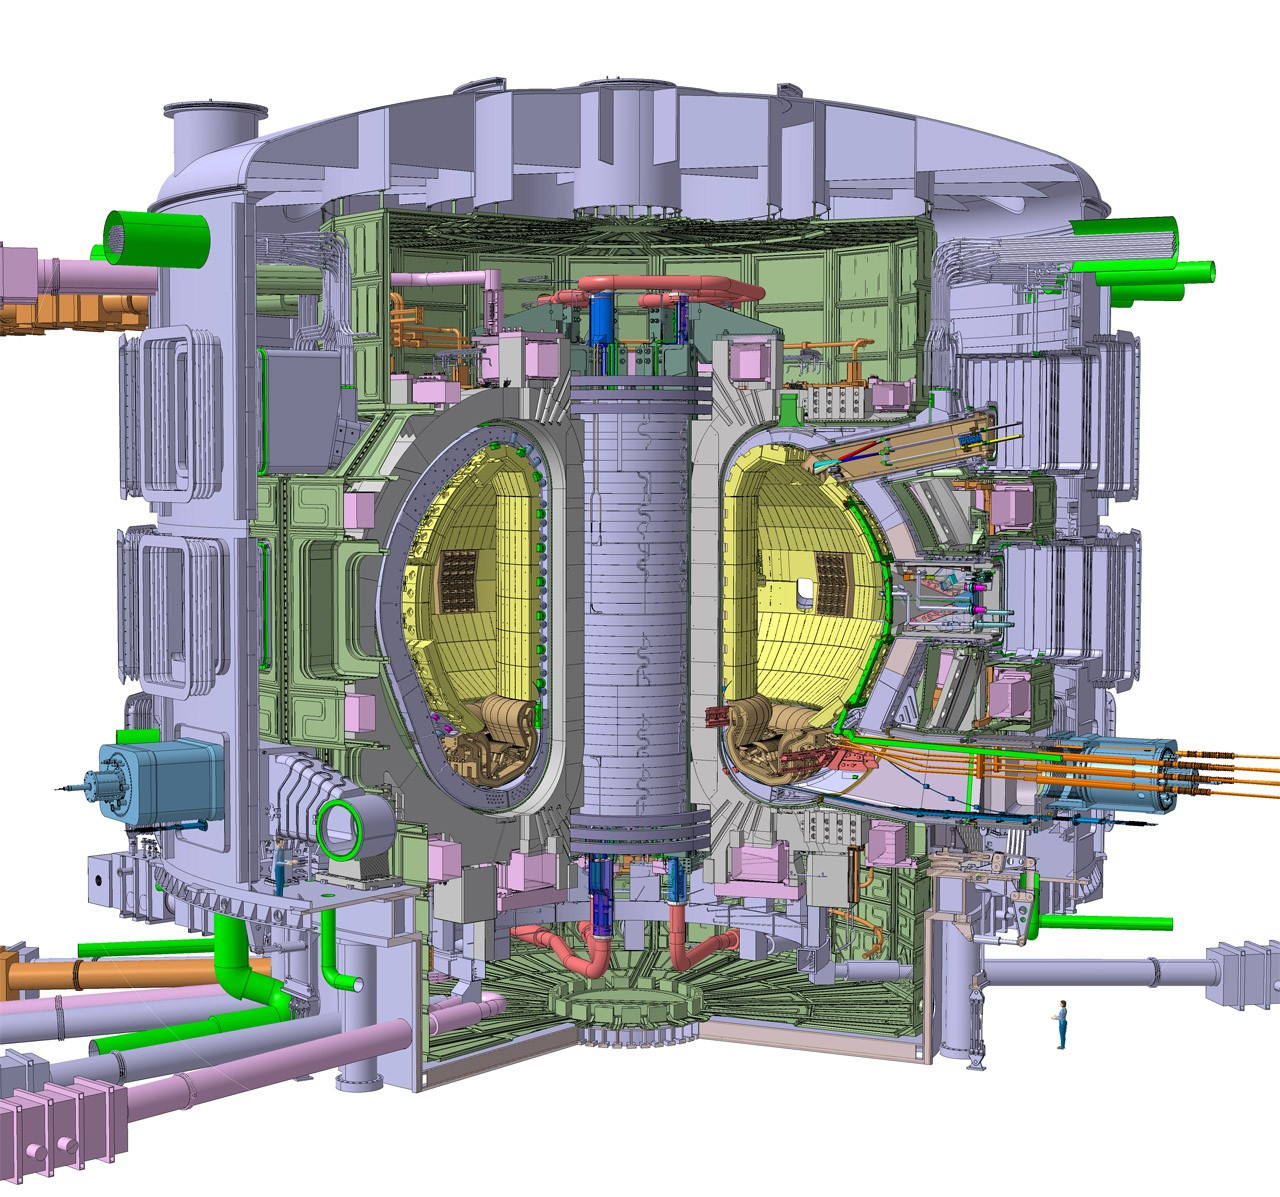 ITER | Credit © ITER Organization, http://www.iter.org/